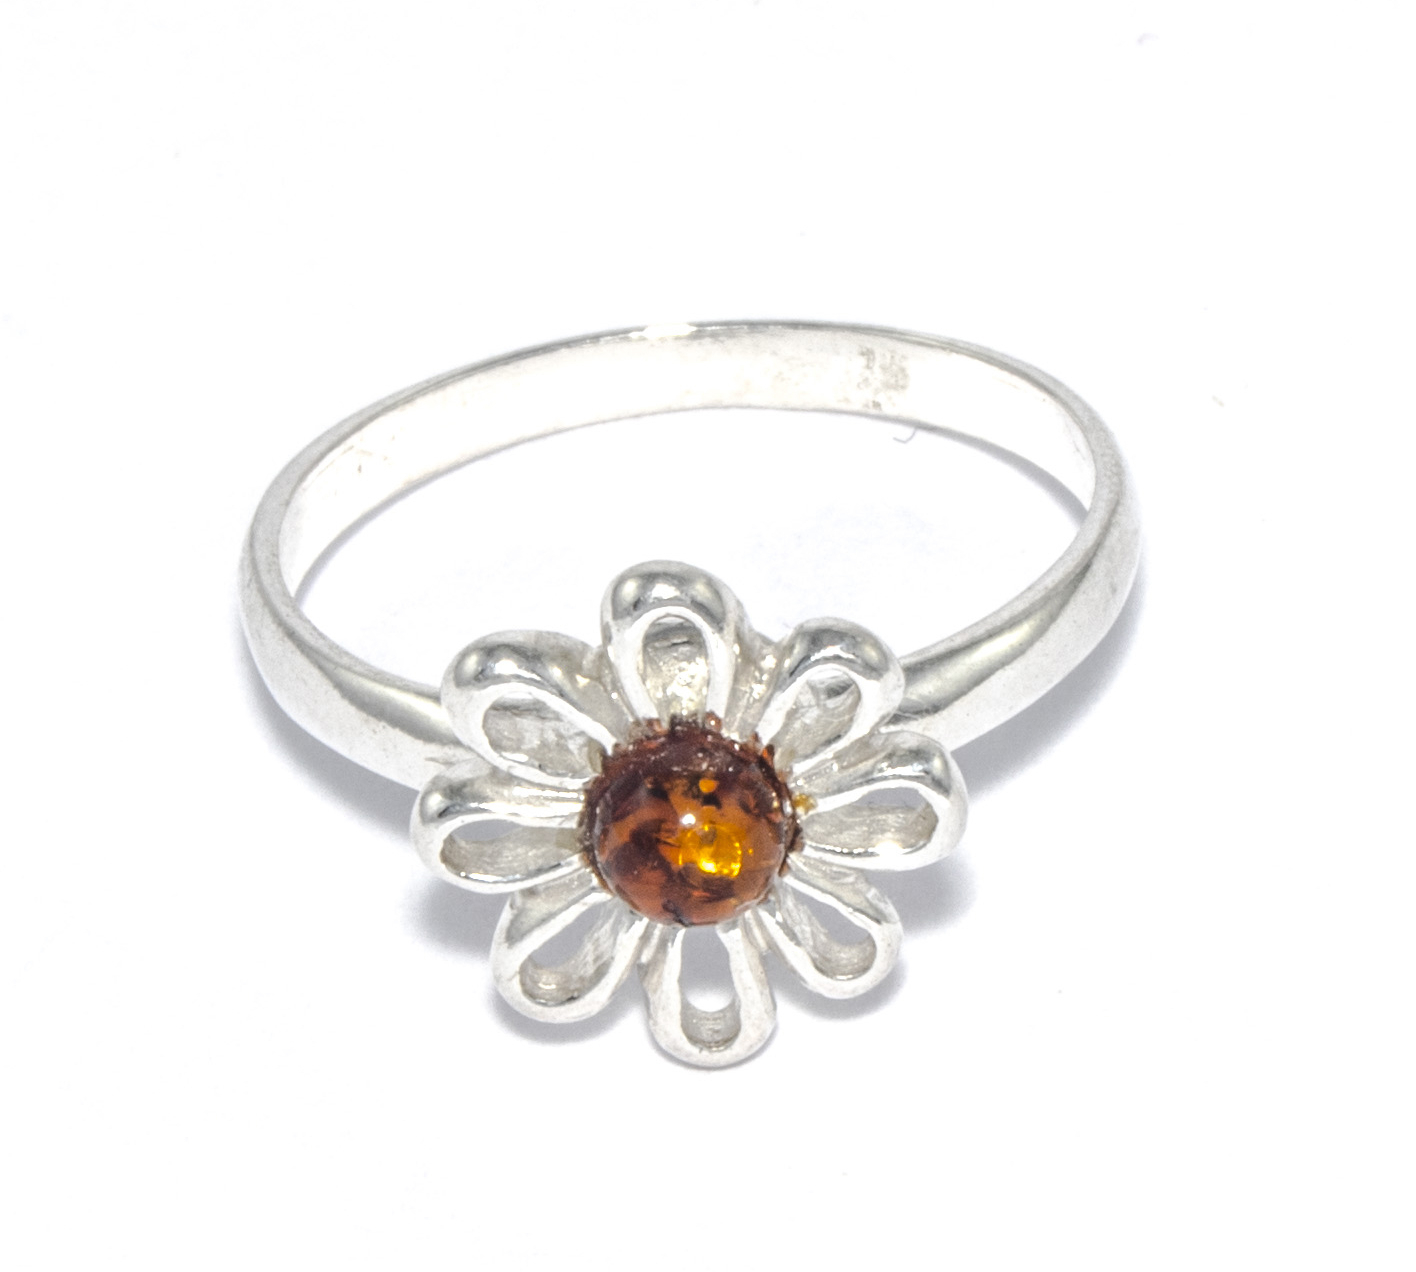 Silver Amber Single Daisy Flower Ring Intended For Latest Daisy Flower Rings (Gallery 11 of 25)